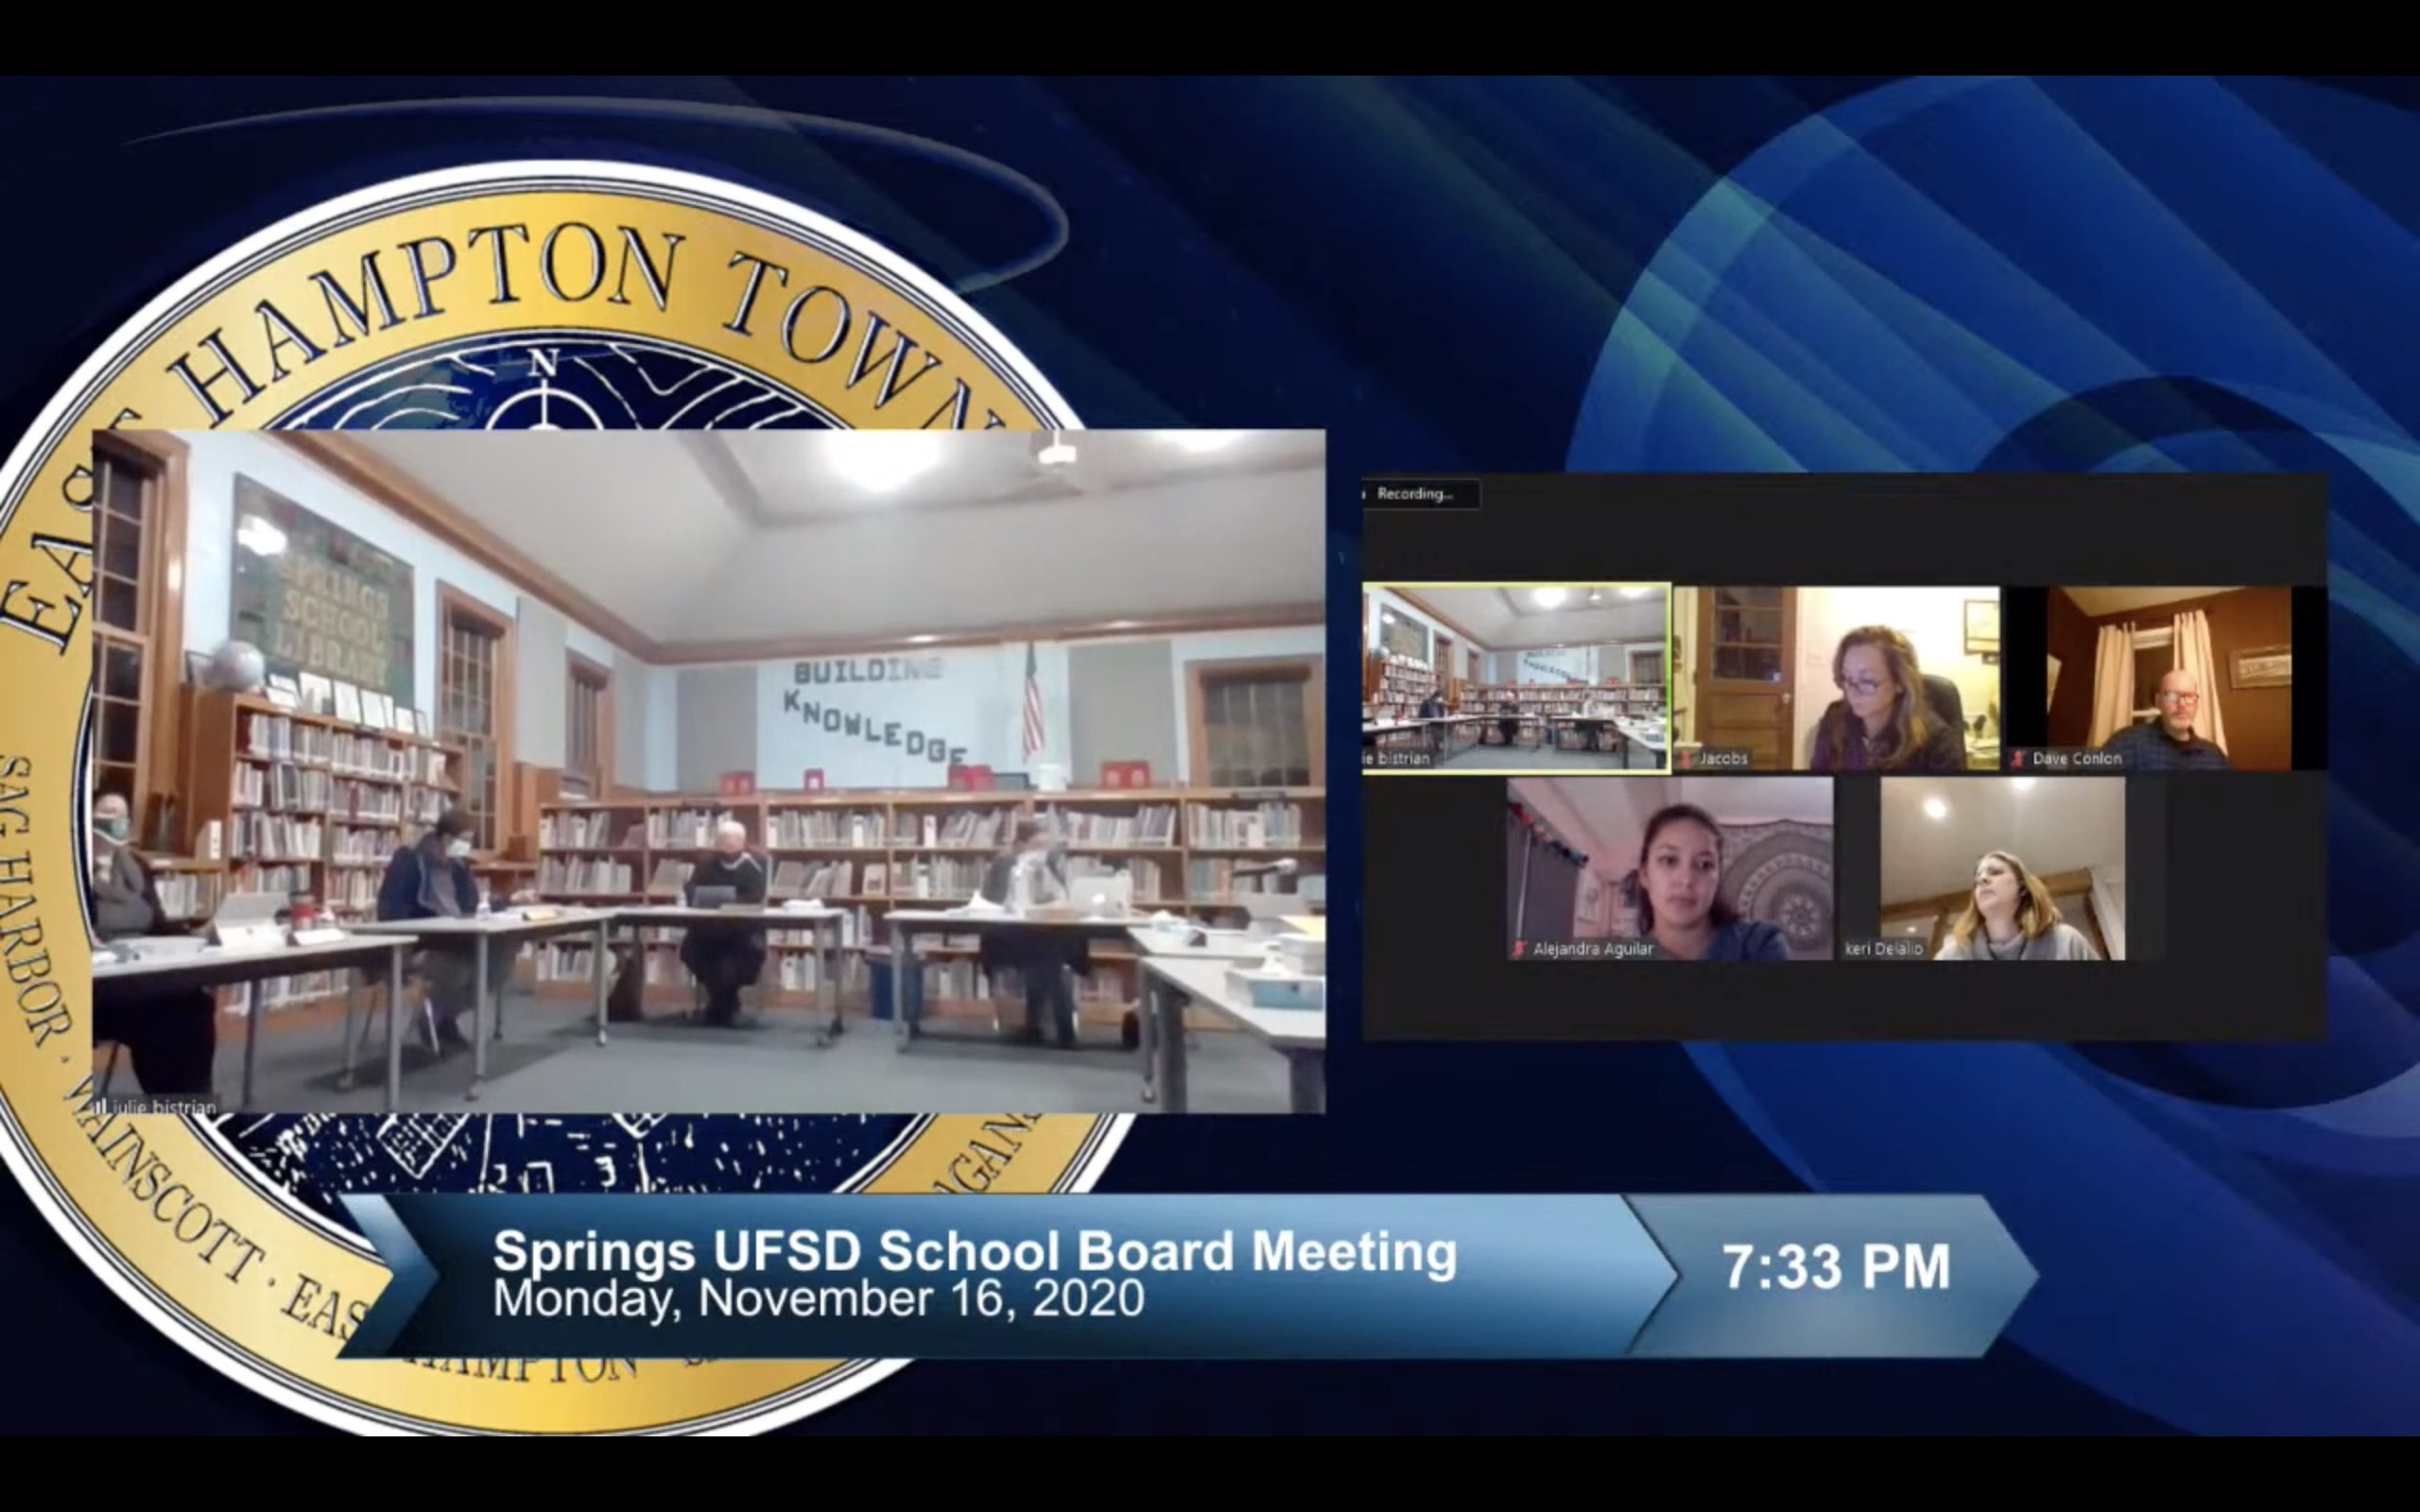 Springs School Board of Education members discuss the Phase 2 reopening plan and parent-teacher conferences during the November 16 meeting.